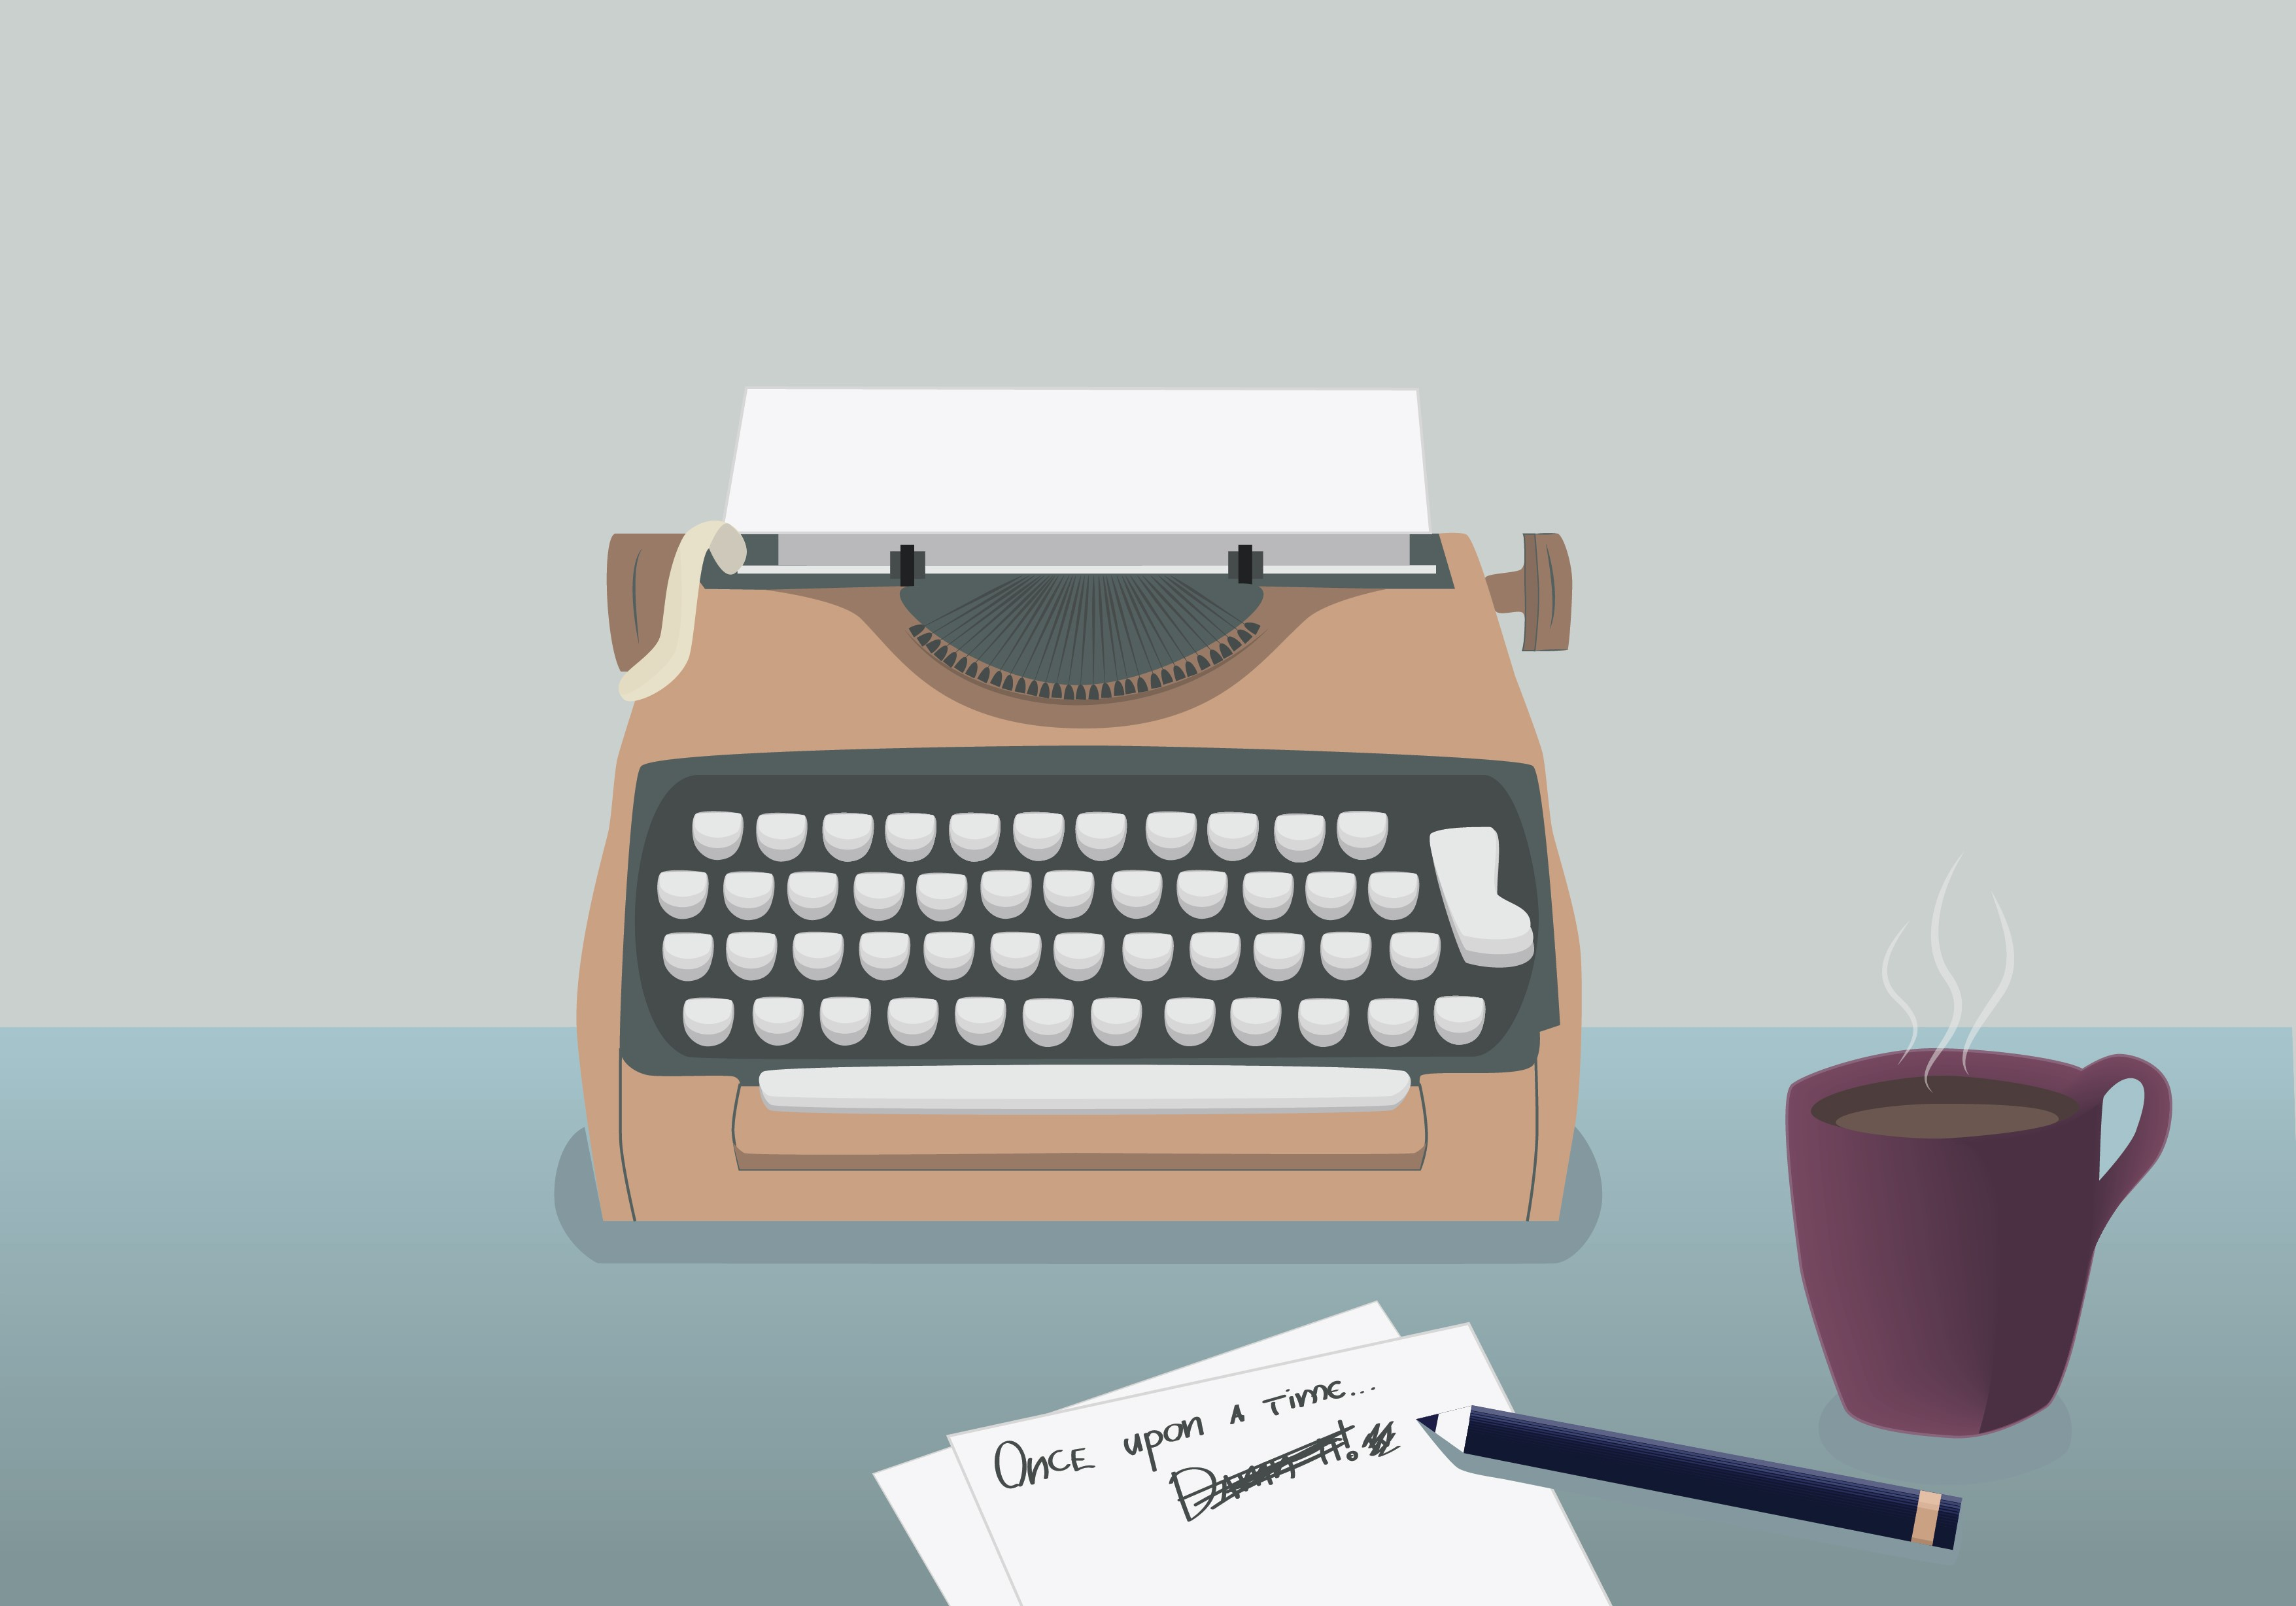 Writer's table: the typewriter, cup of coffee, sheet, and a pen